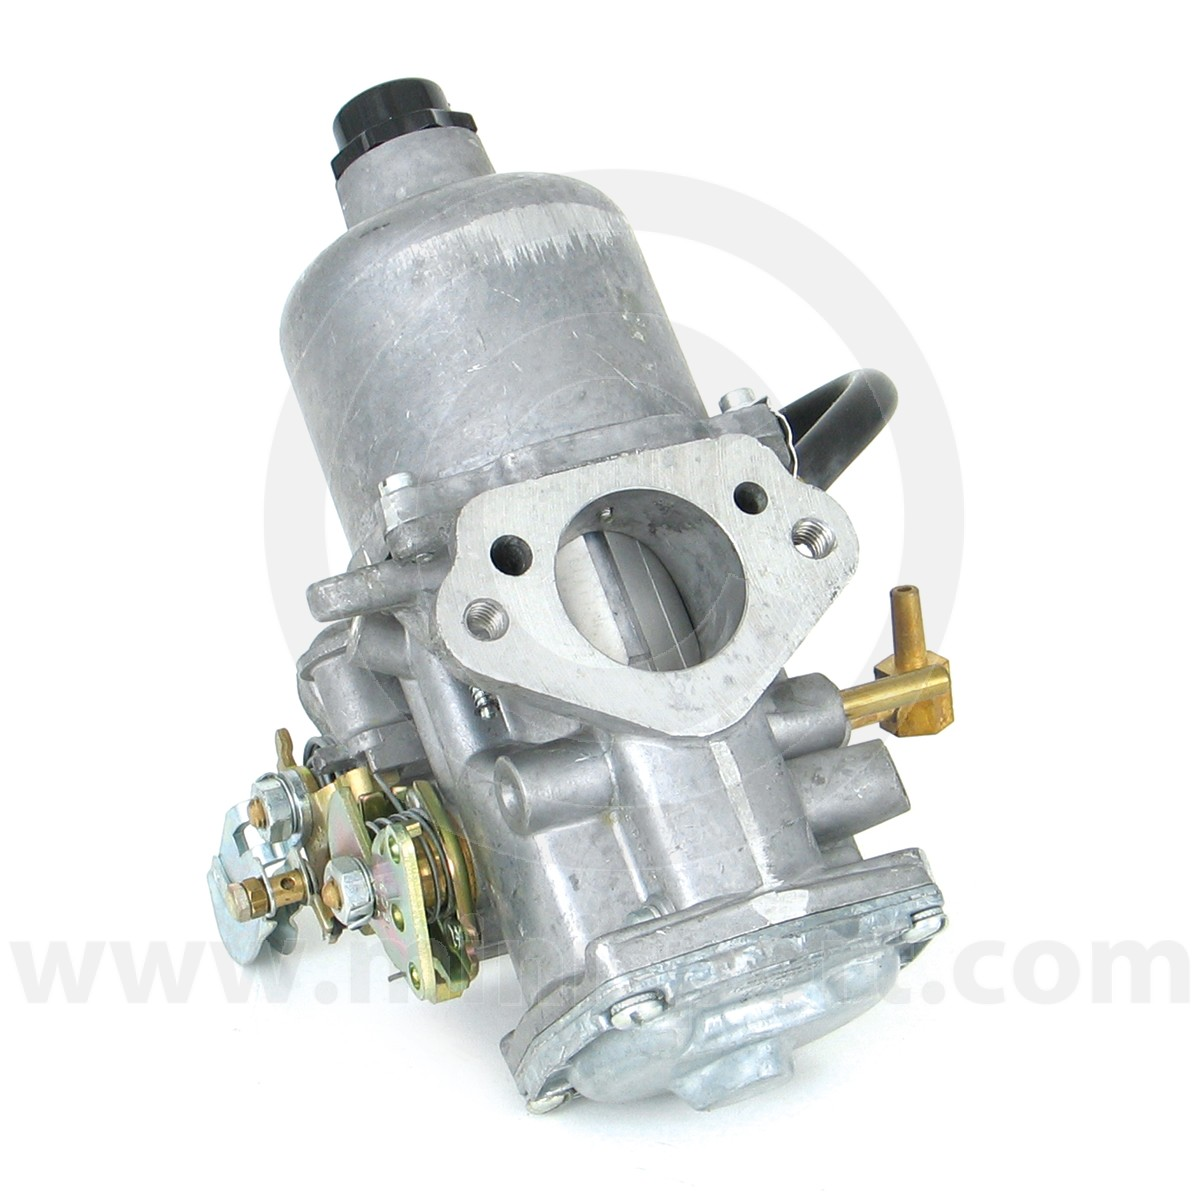 Ms2906 Mini Hif38 Su Carb Carburettor Sport 1275 Gt With Alternator And Rocker Type Switches Single 15 For 1275cc Models